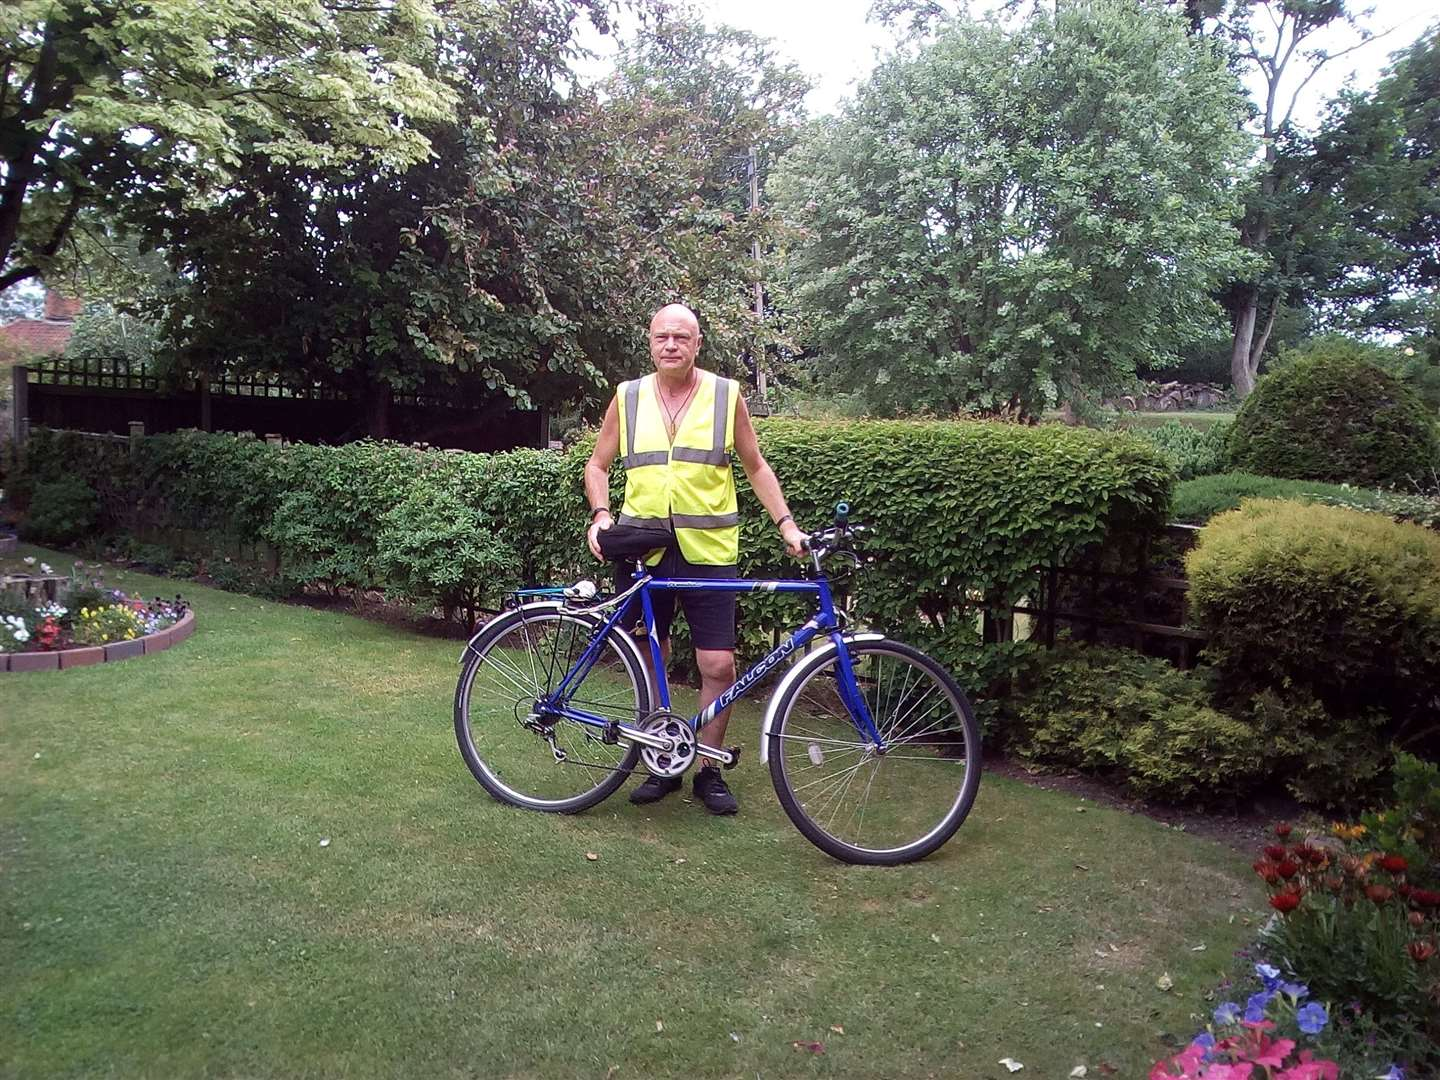 Mark Punchard, who works at Central England Co-op's Halesworth Food Store, is aiming to bike 300 miles in September in memory of his sister. Picture: Submitted. (41037855)